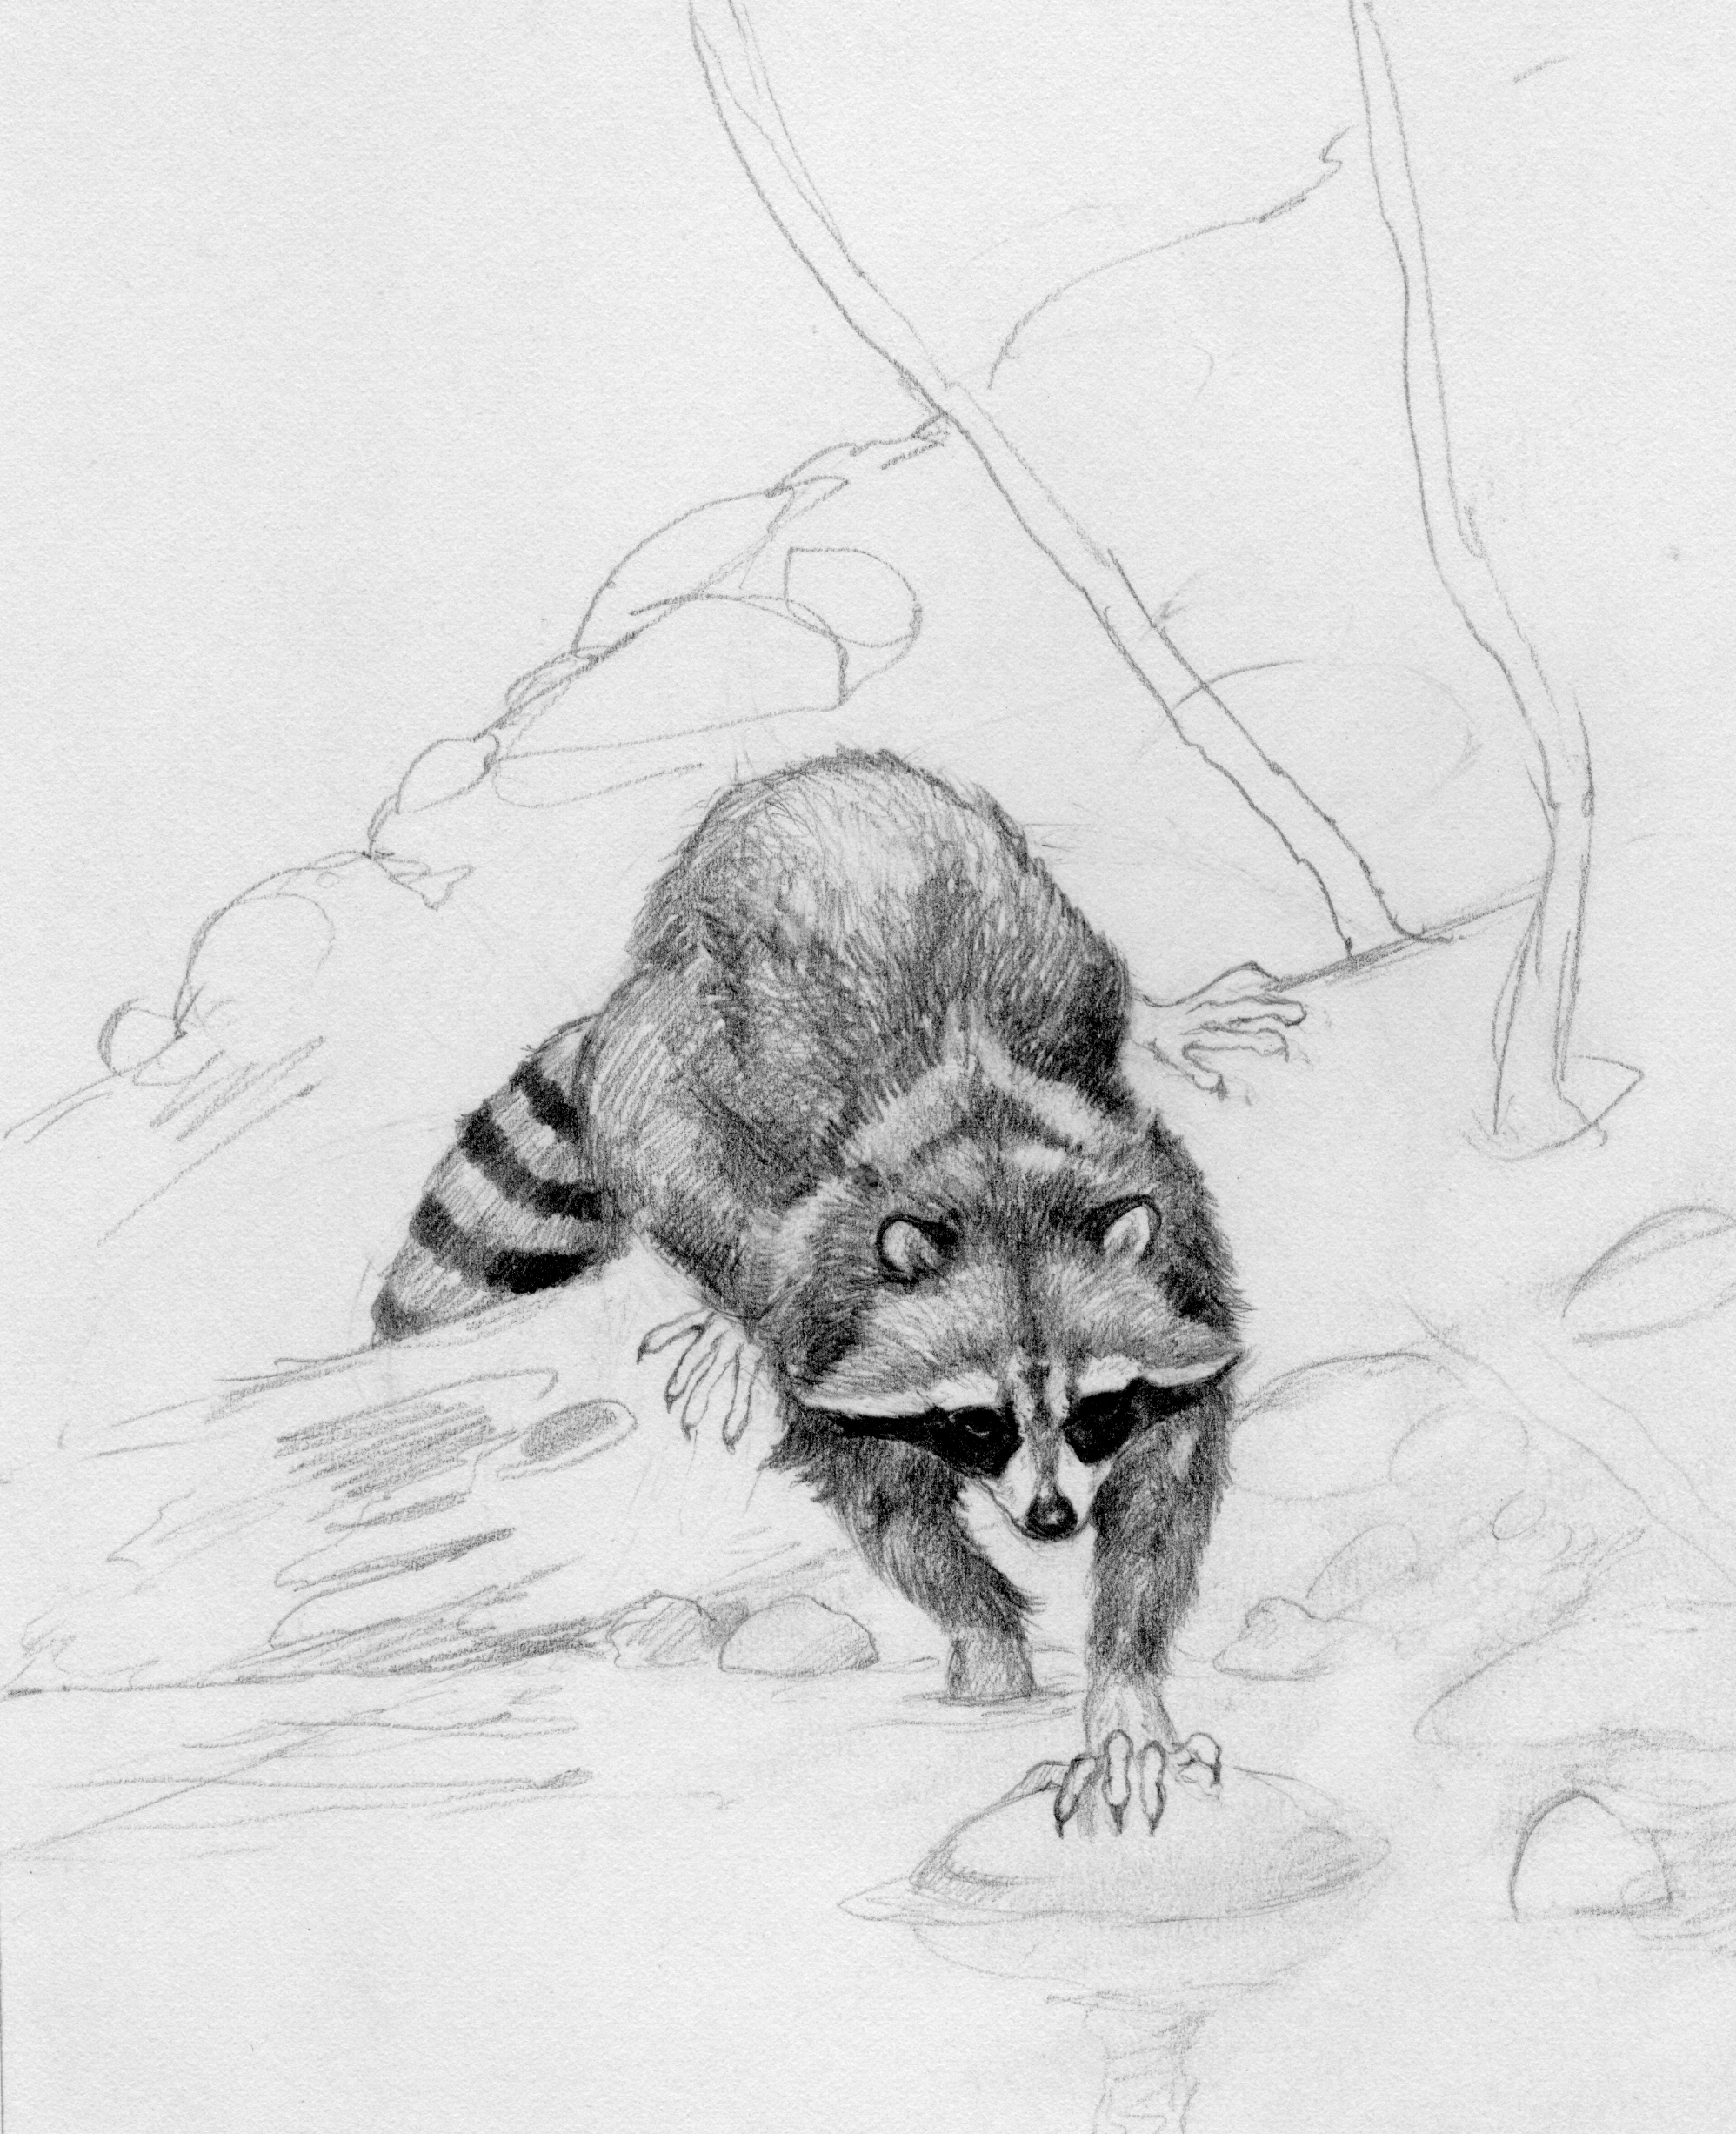 Drawn racoon pencil Art Pair The Pencils Monte